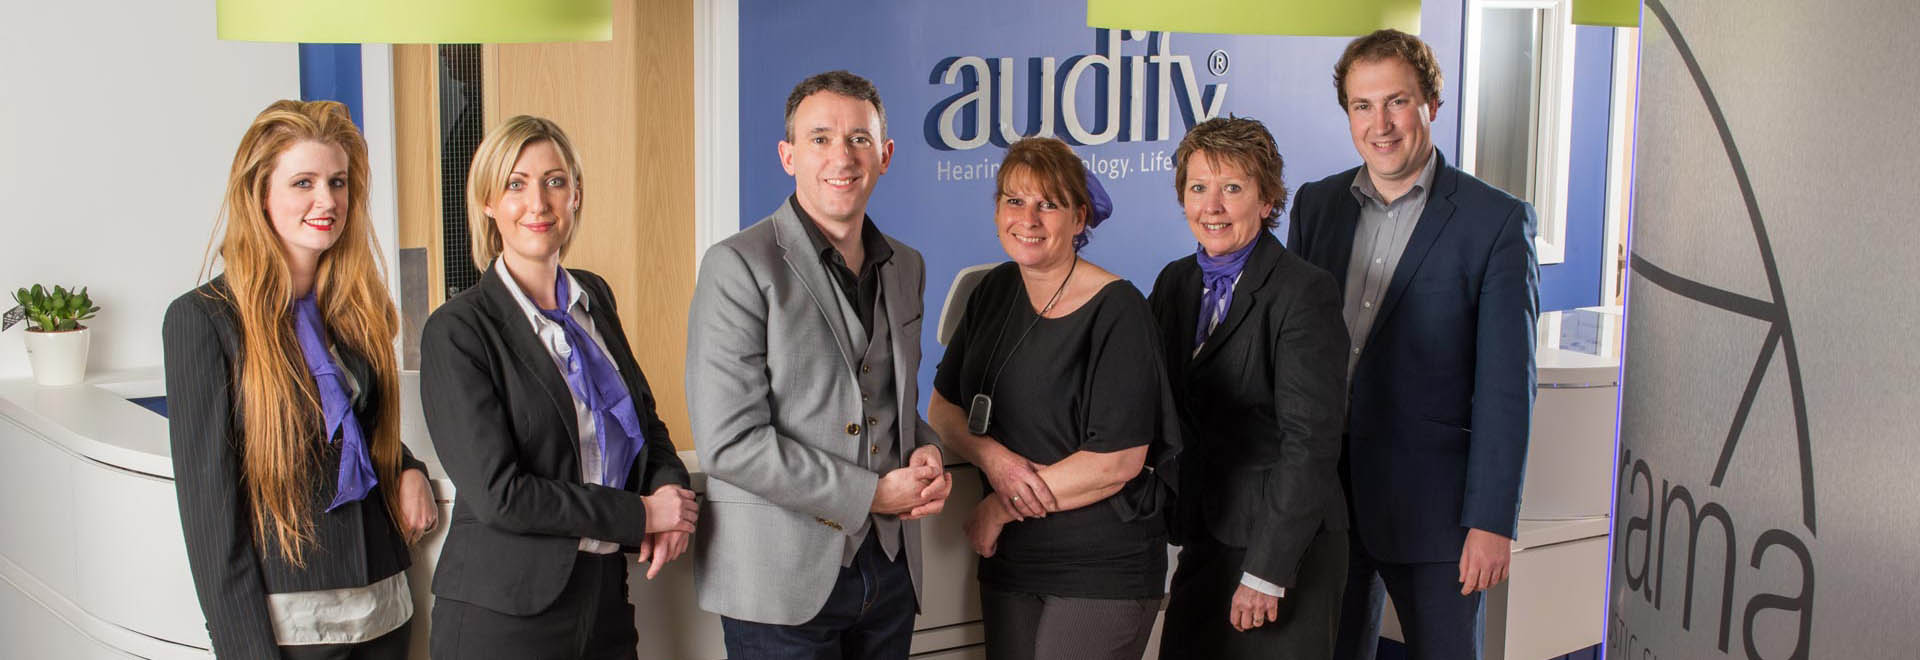 Meet the team at Audify®|Exeter